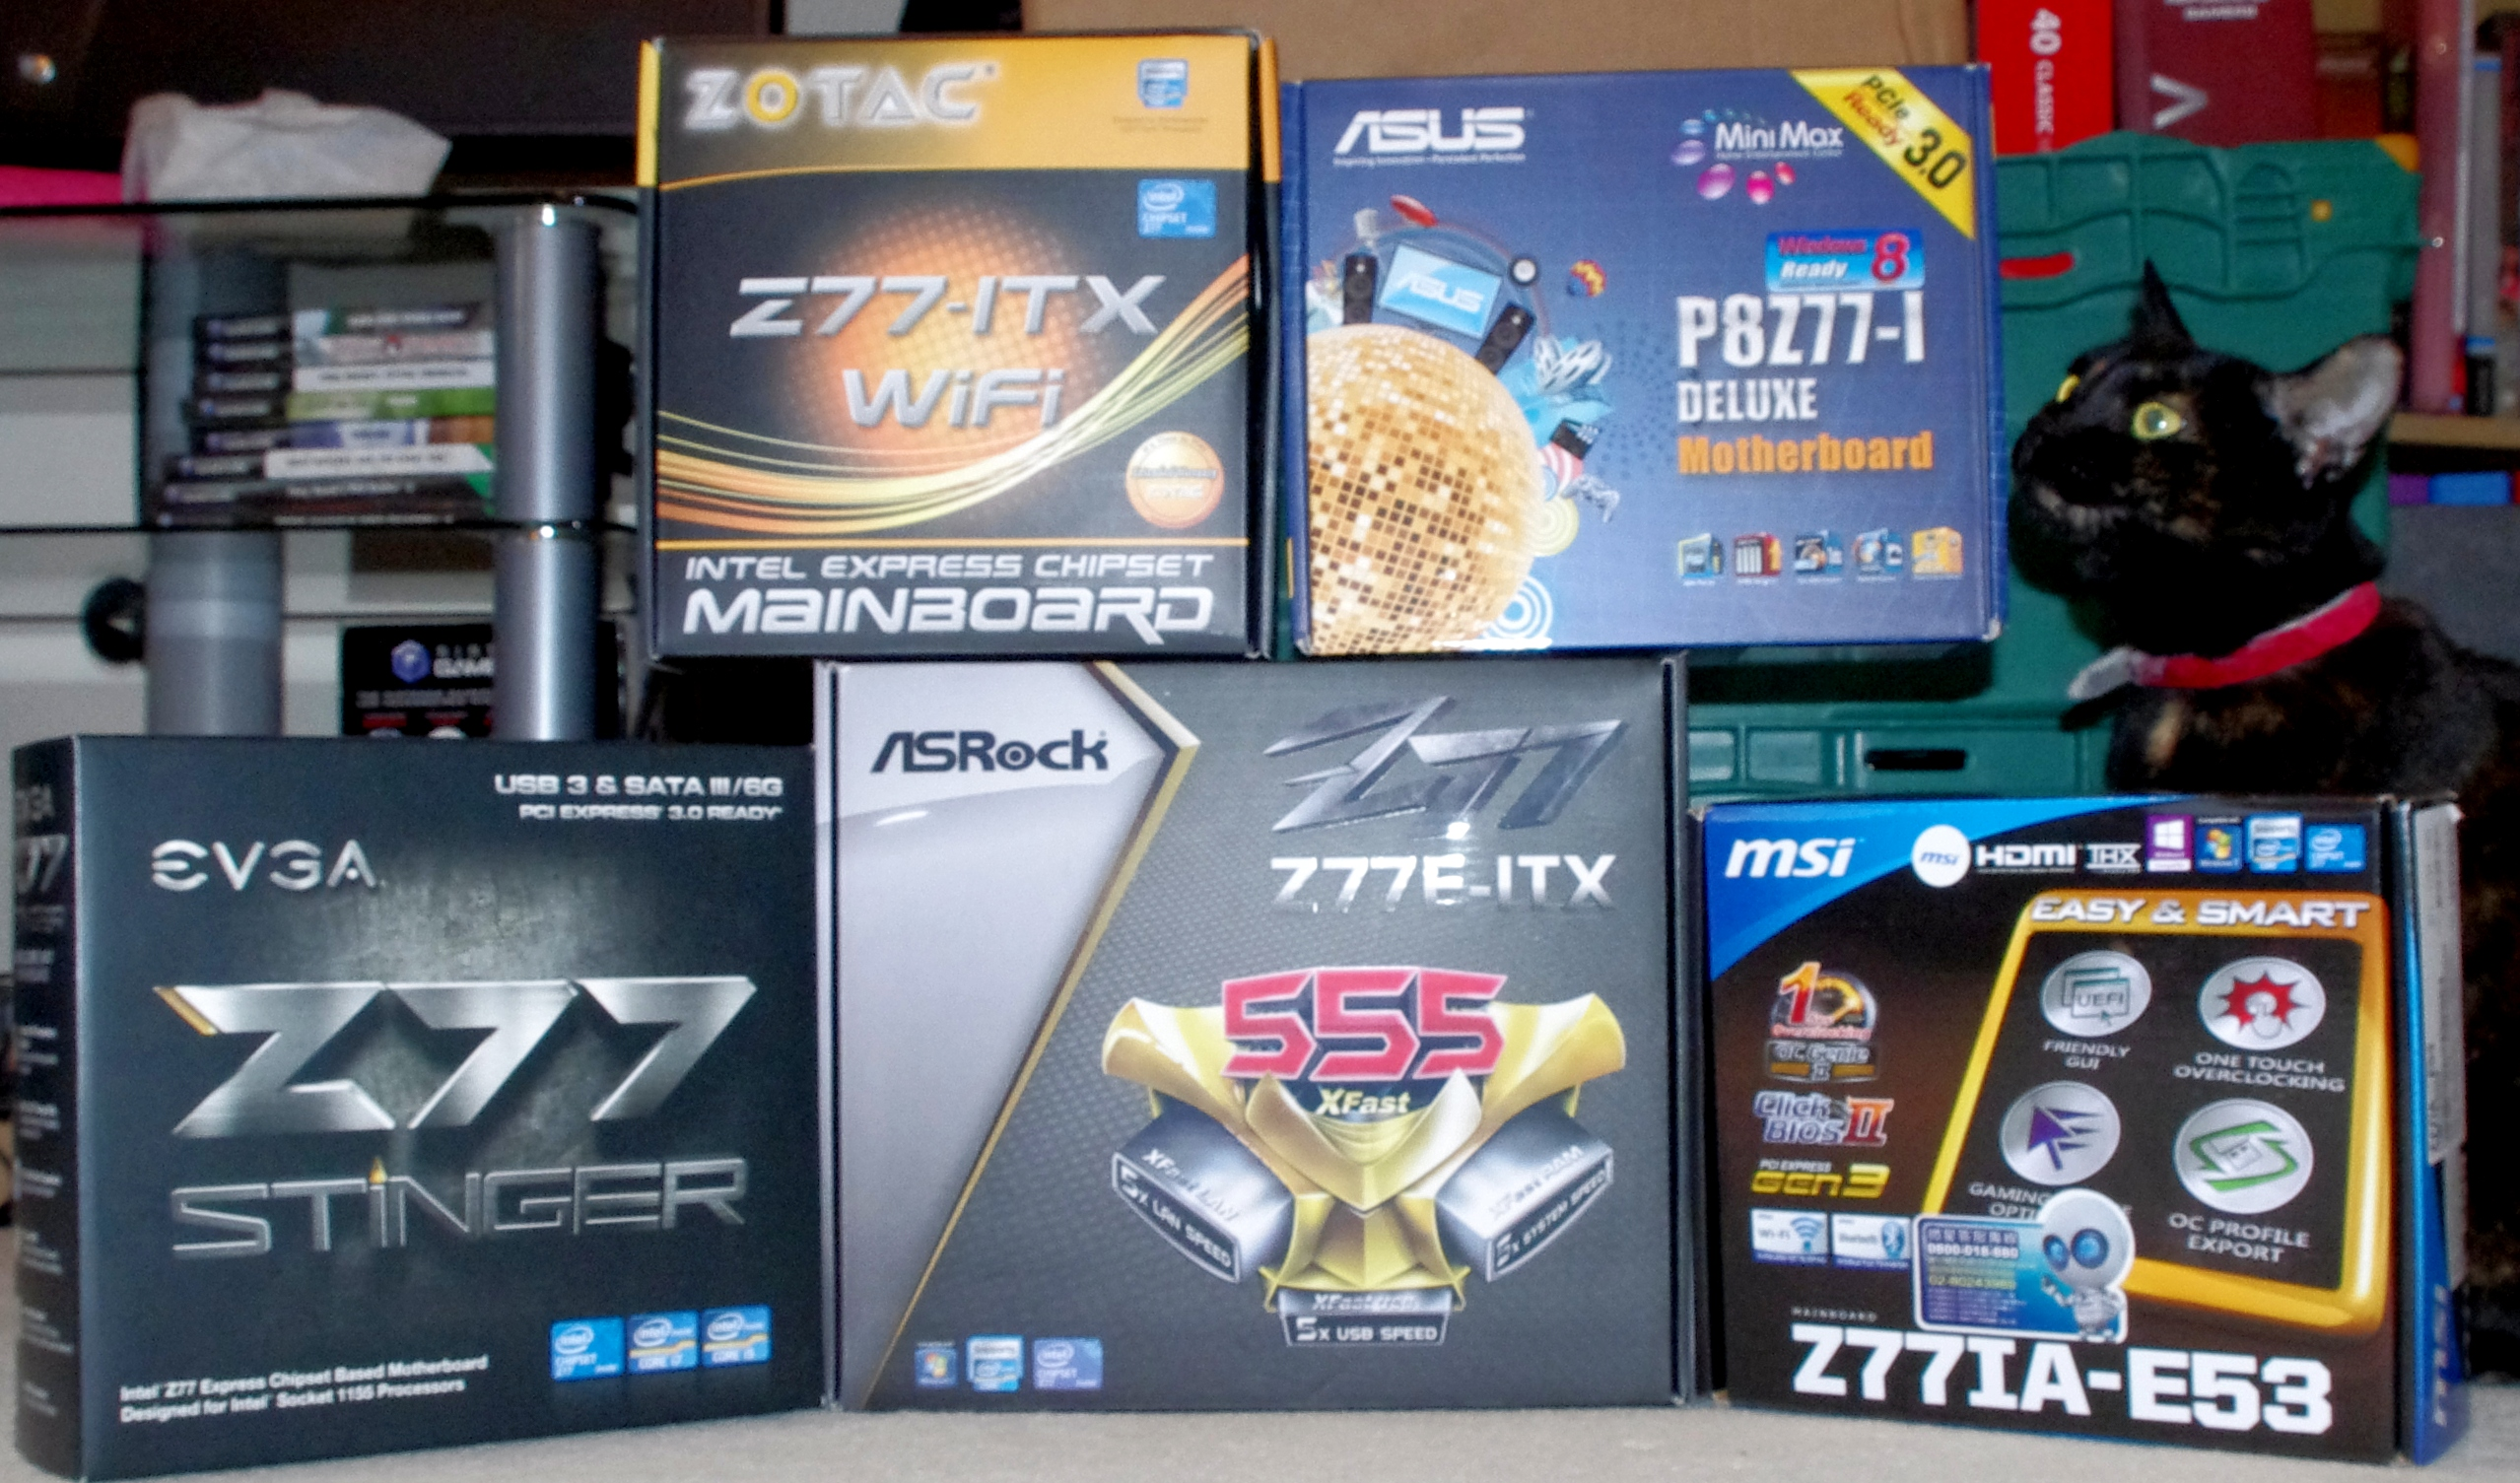 Z77 mITX Round-Up: Five of the Best – MSI, Zotac, ASRock